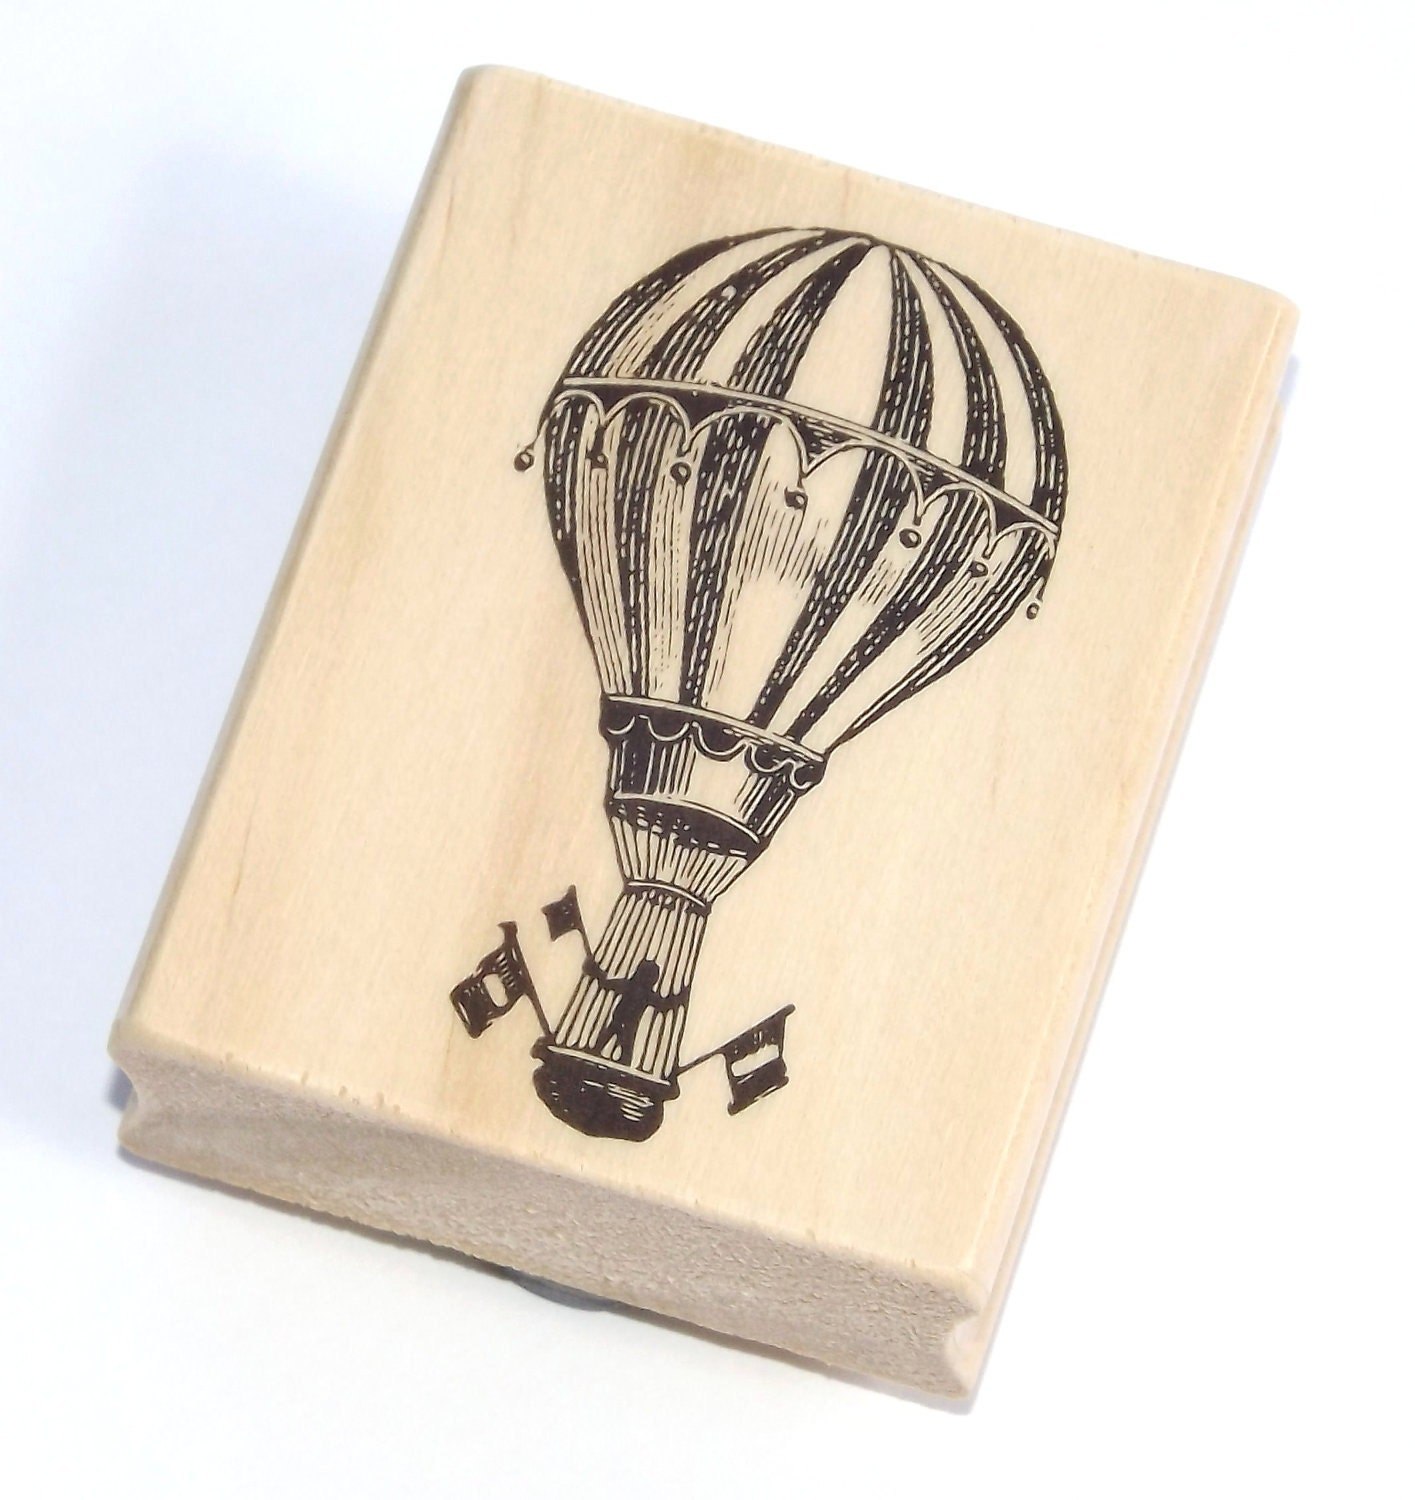 hot air balloon and wood block Buoyancy: calculating force and density with  be it a giant cargo ship or a hot air balloon,  calculating force and density with archimedes' principle related.